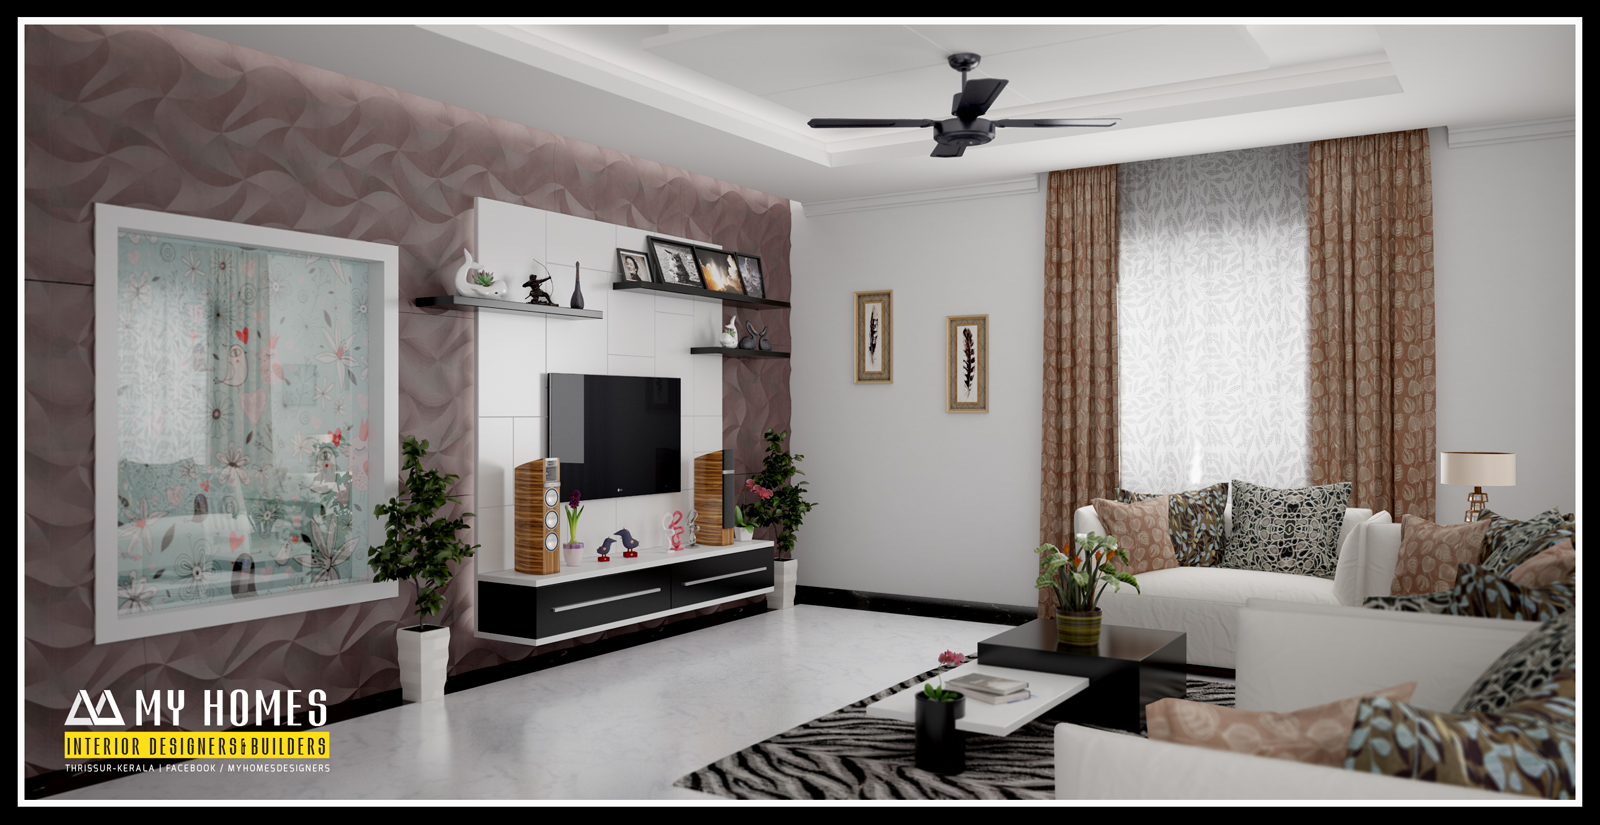 Kerala interior design ideas from designing company thrissur for Home interior design company